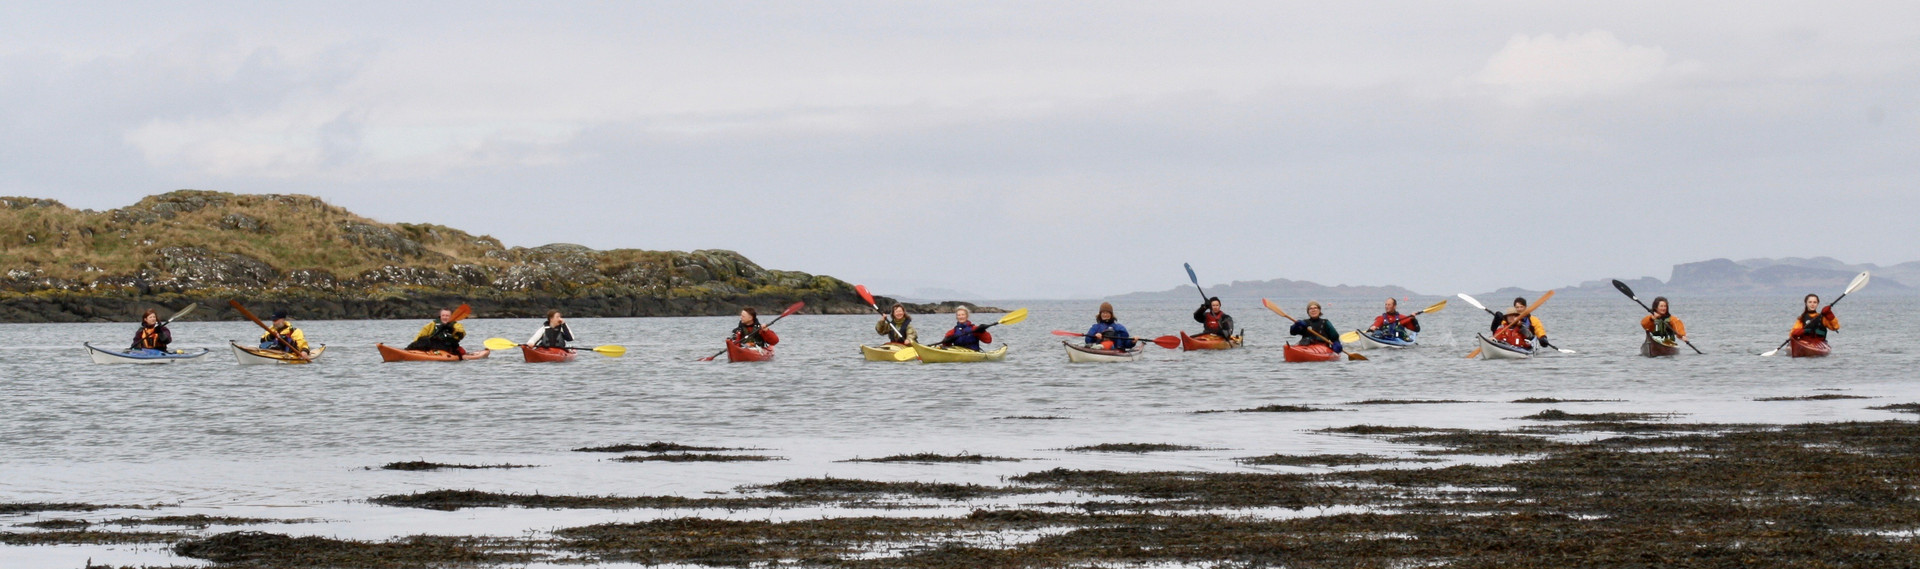 Kayakers at Dounie, Sound of Jura